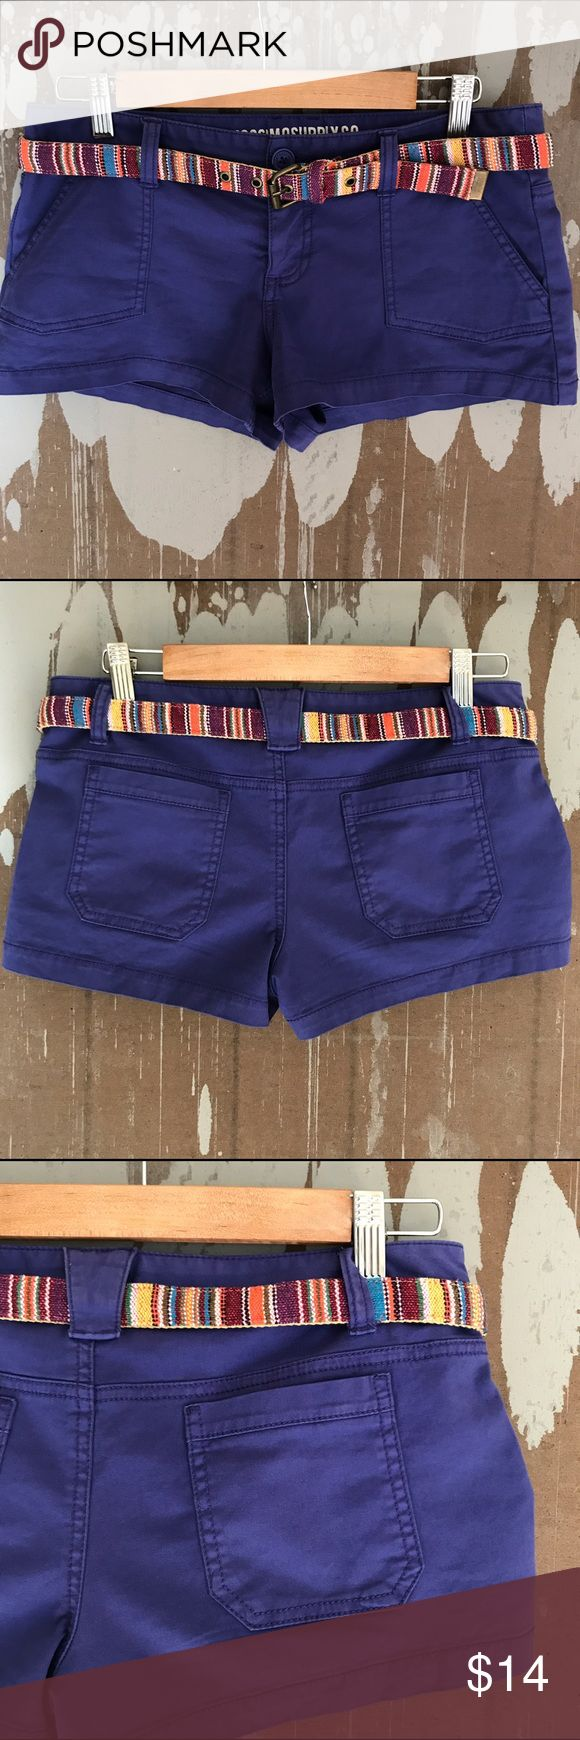 "Mossimo Cobalt Blue Shorts Belted Pockets Size 7 Mossimo Supply Co. belted shorts. SIZE 7 . (Target Fit Style: 6) Juniors. Cobalt Blue, darling. Waist: 15"" Inseam: 2.75"" Rise: 8"" Excellent condition, no signs of wear. Inventory: K19. Mossimo Supply Co Shorts Cargos"